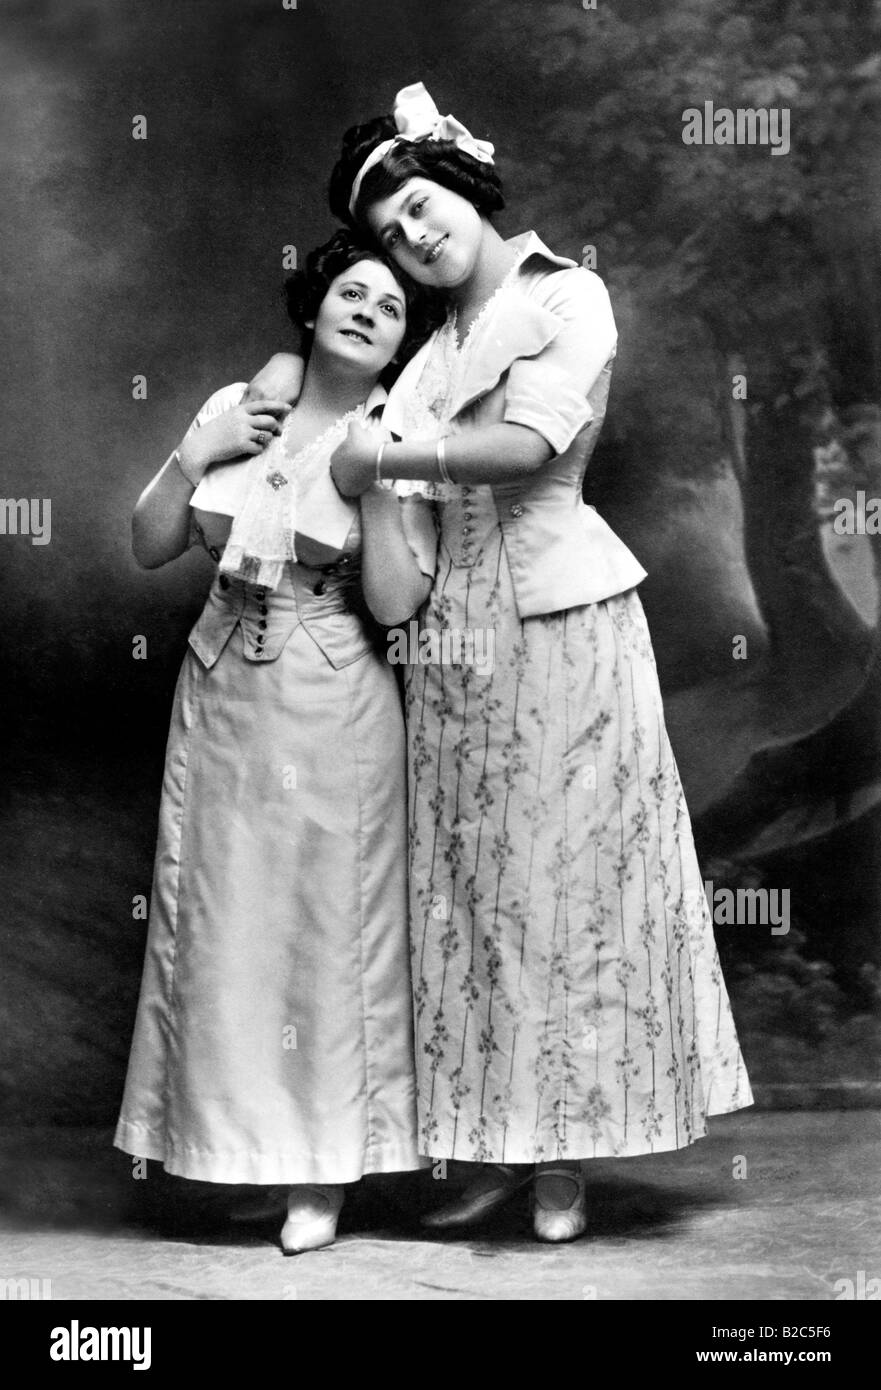 Die keusche Barbara, two women embracing, historic picture from about 1910 - Stock Image